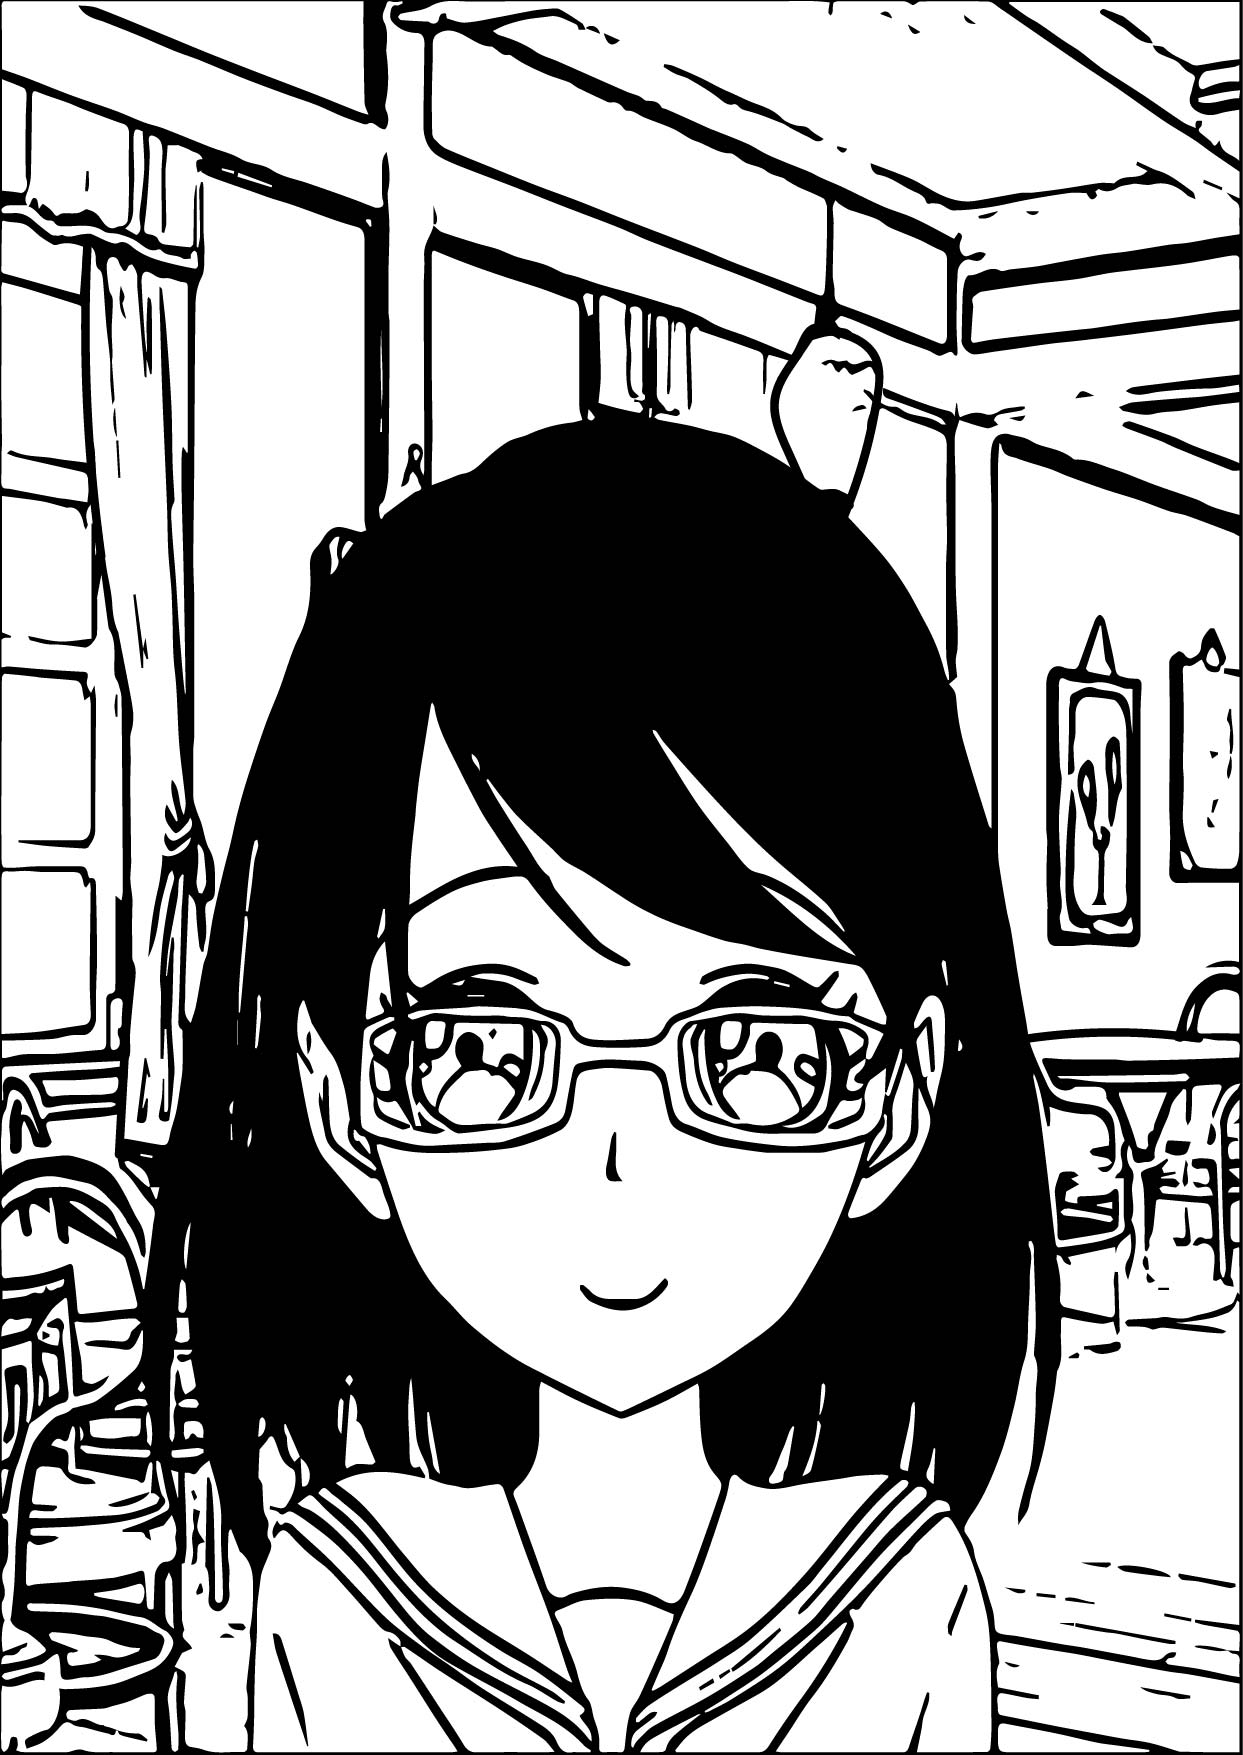 Supernoobs Girl Manga Coloring Page